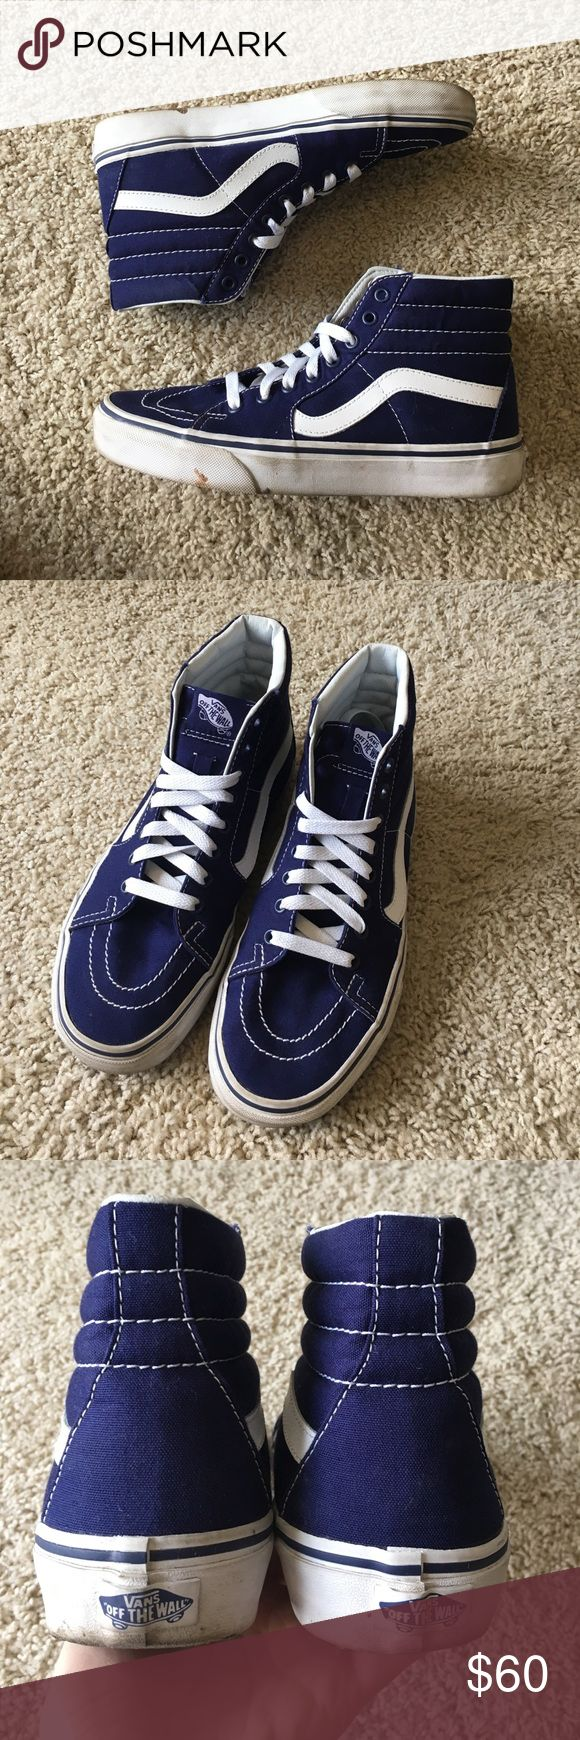 ✨NEW LISTING✨Vans navy blue high tops Excellent used condition, only worn once. Women's 8, men's 6.5. Vans Shoes Sneakers